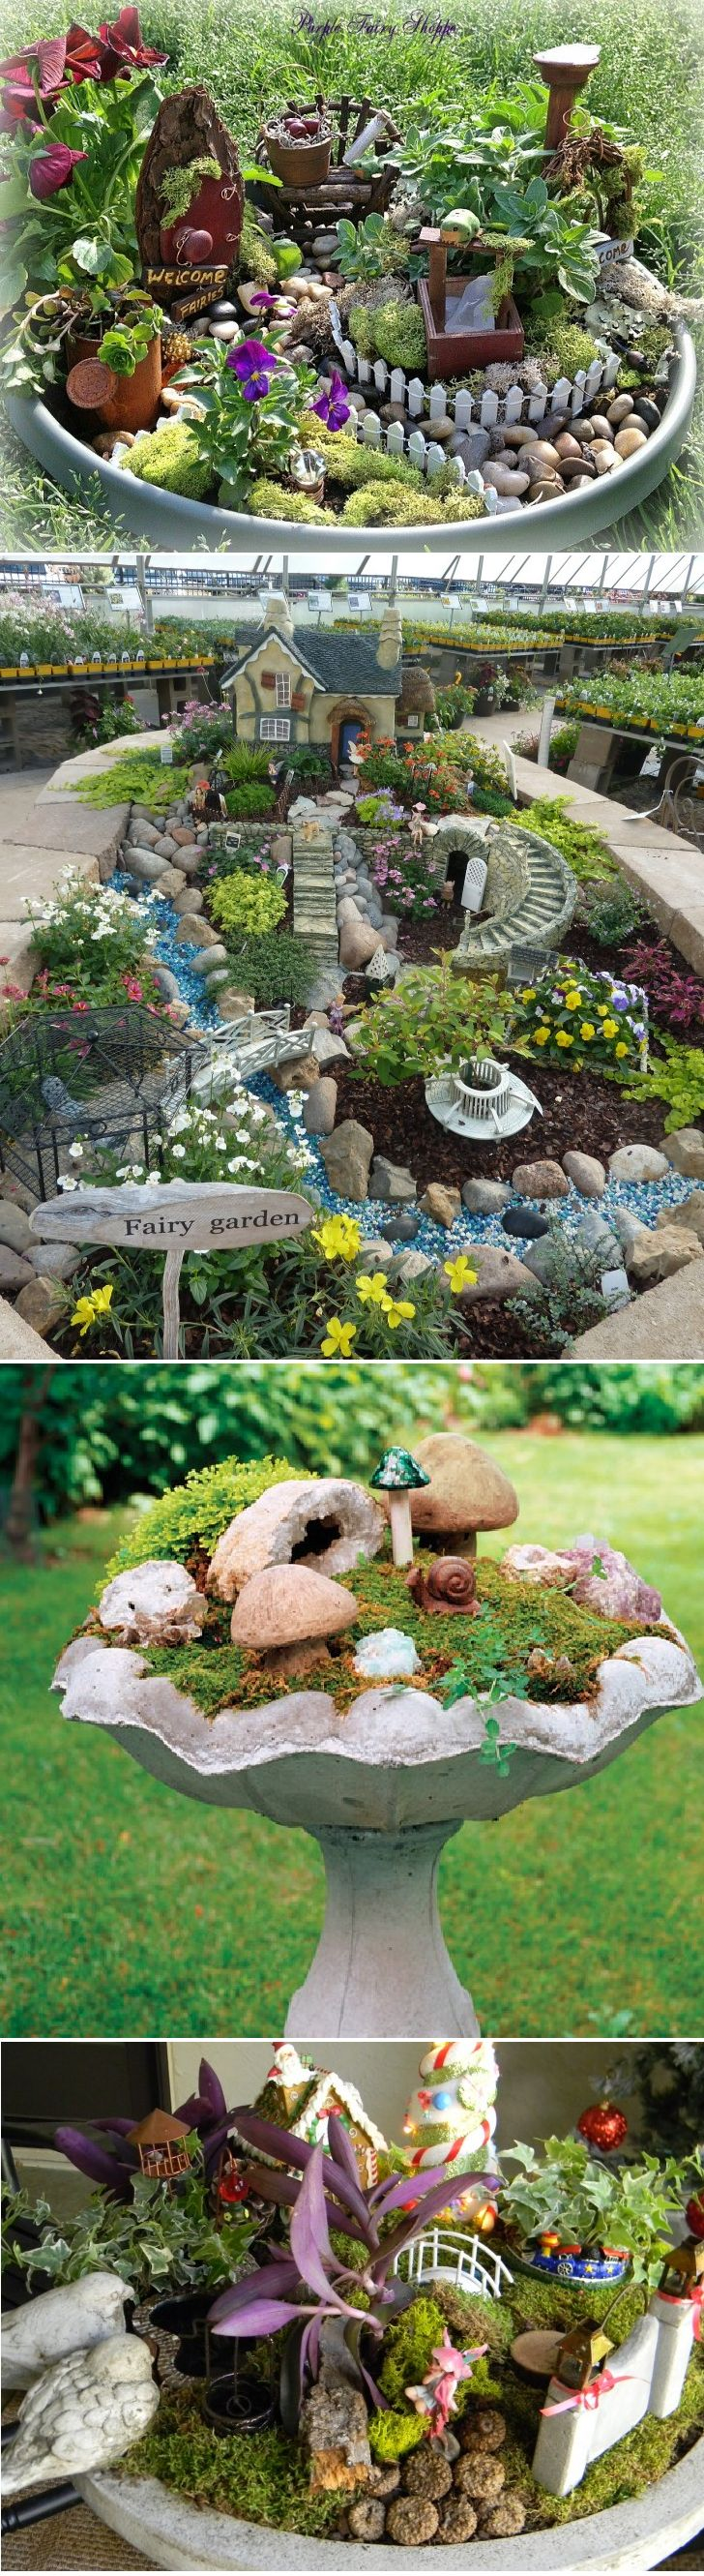 diy ideas how to make fairy garden gardening designing oh my gosh really want to do the bird bath mini garden - Fairy Garden Design Ideas